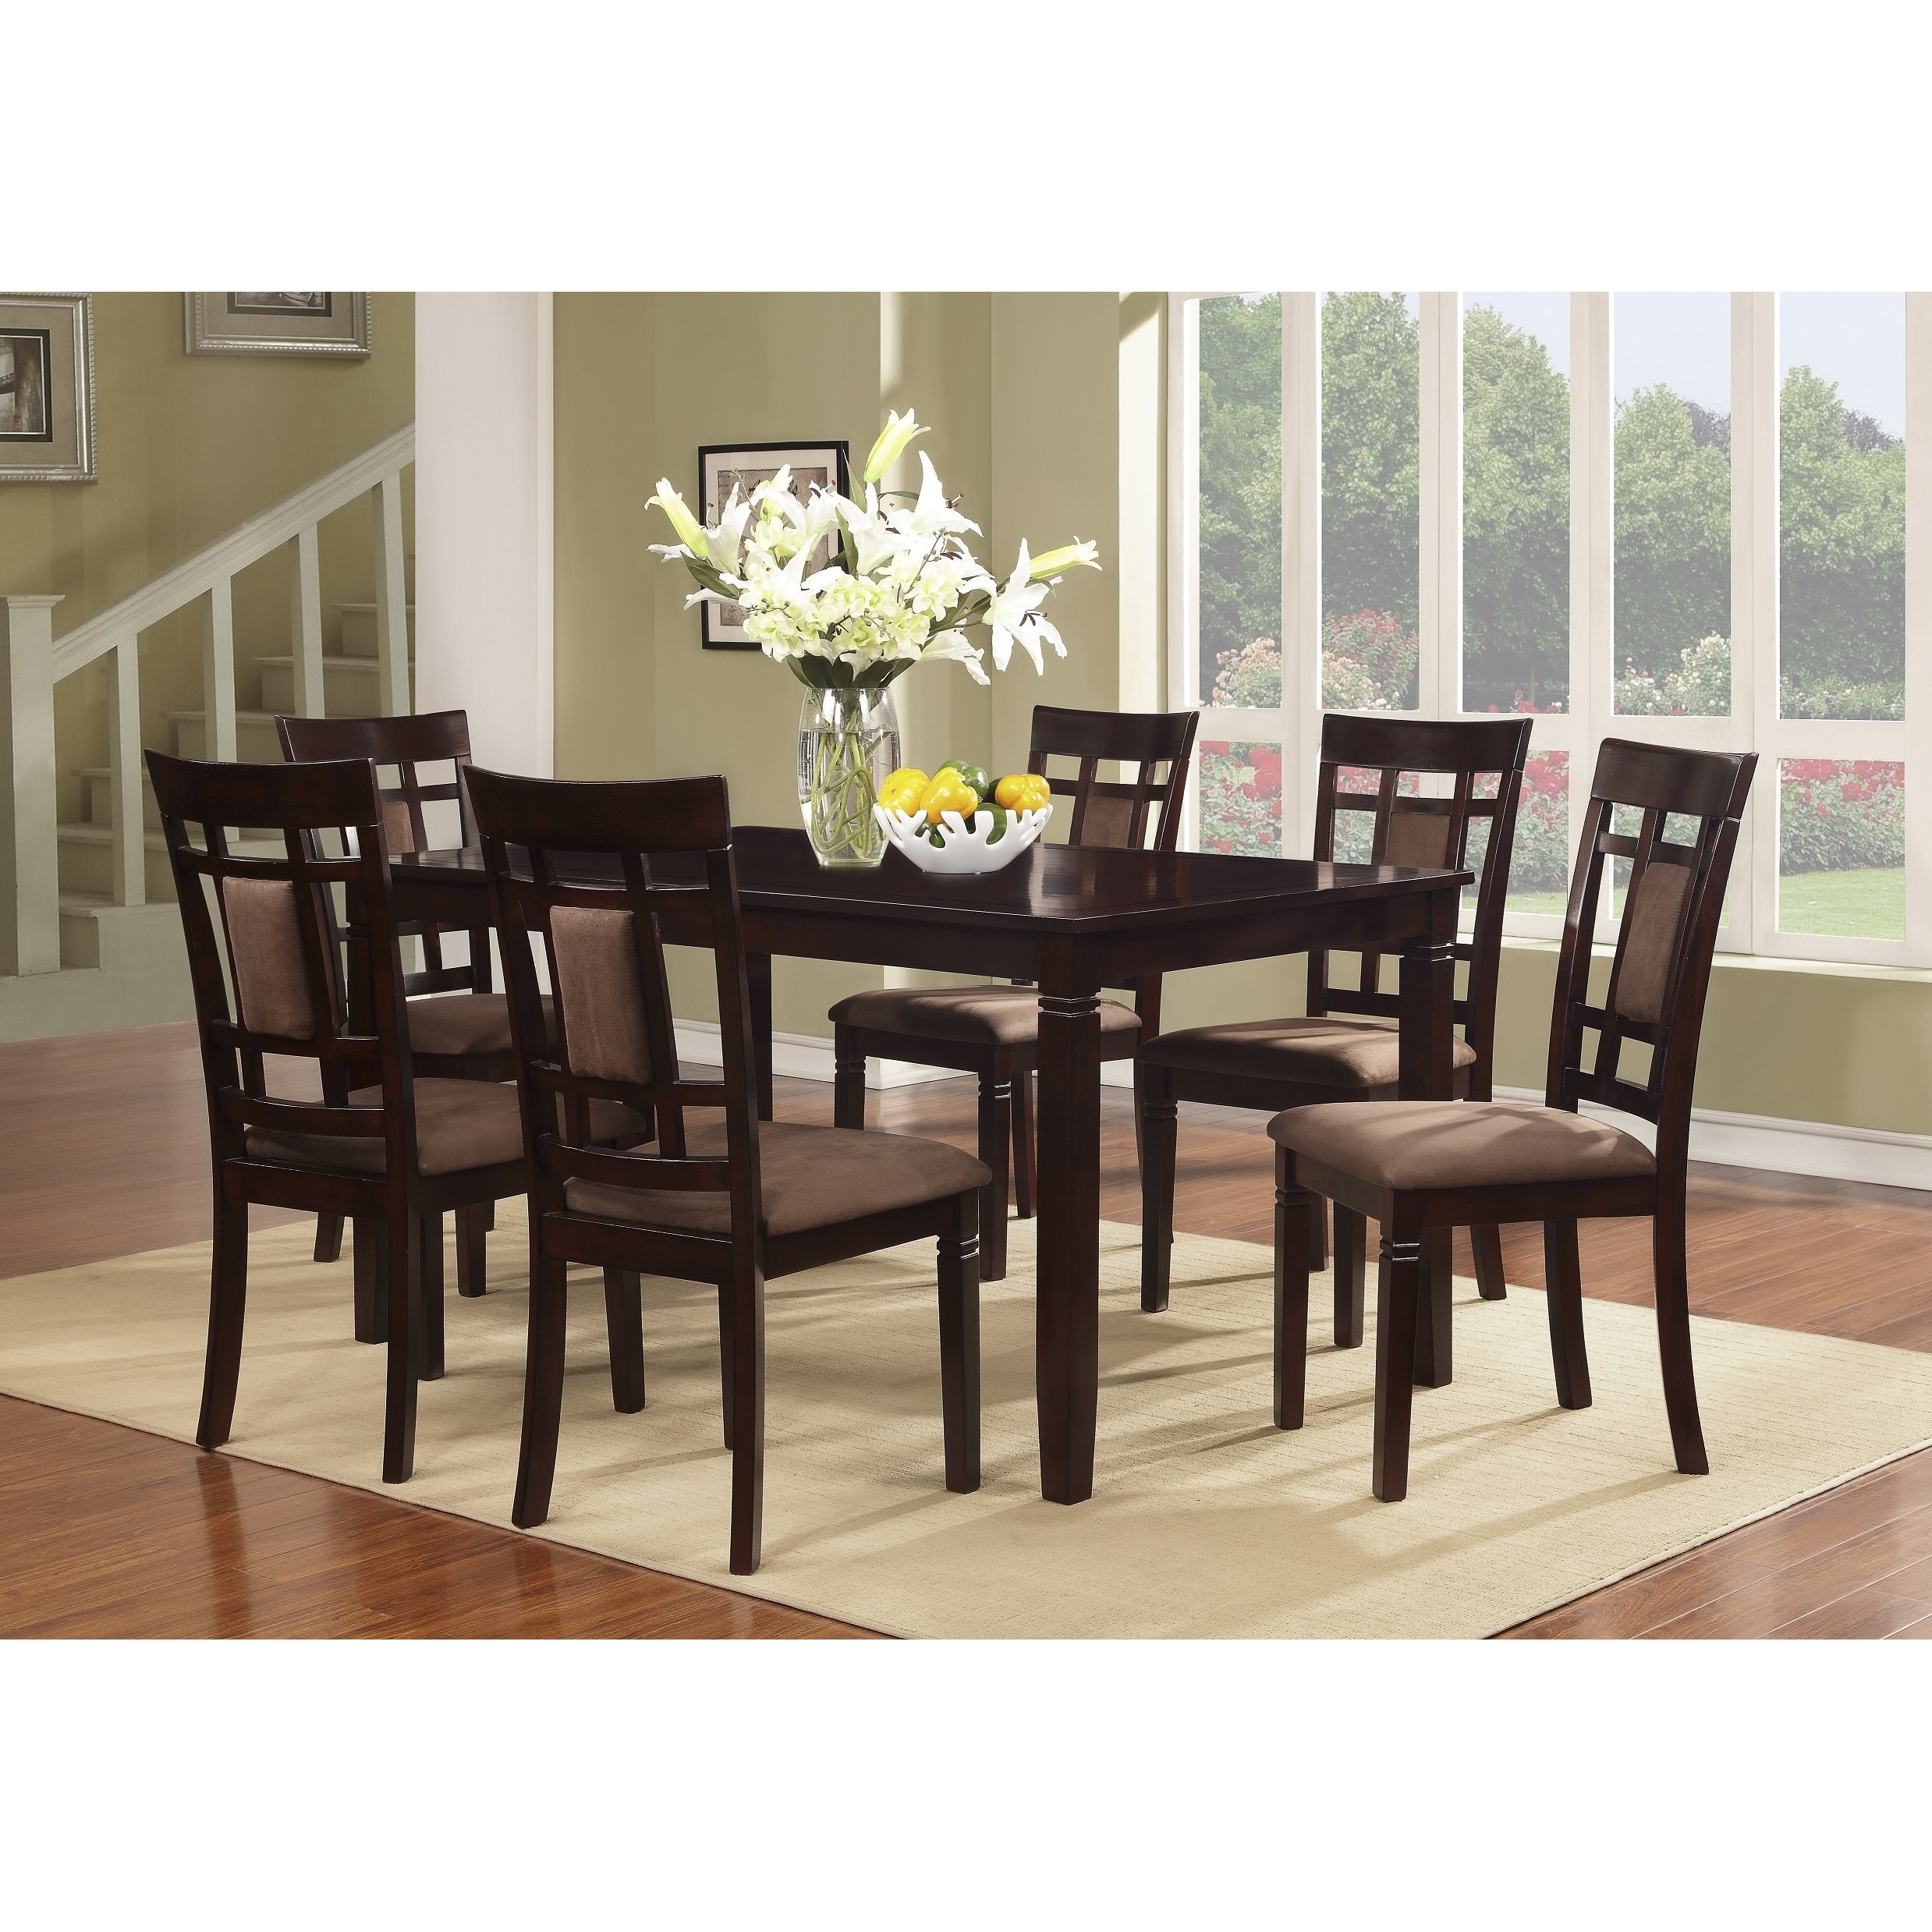 Cherry Wood Dinette Sets: 7pcs Piece Cherry Finish Solid Wood Dining Table Set